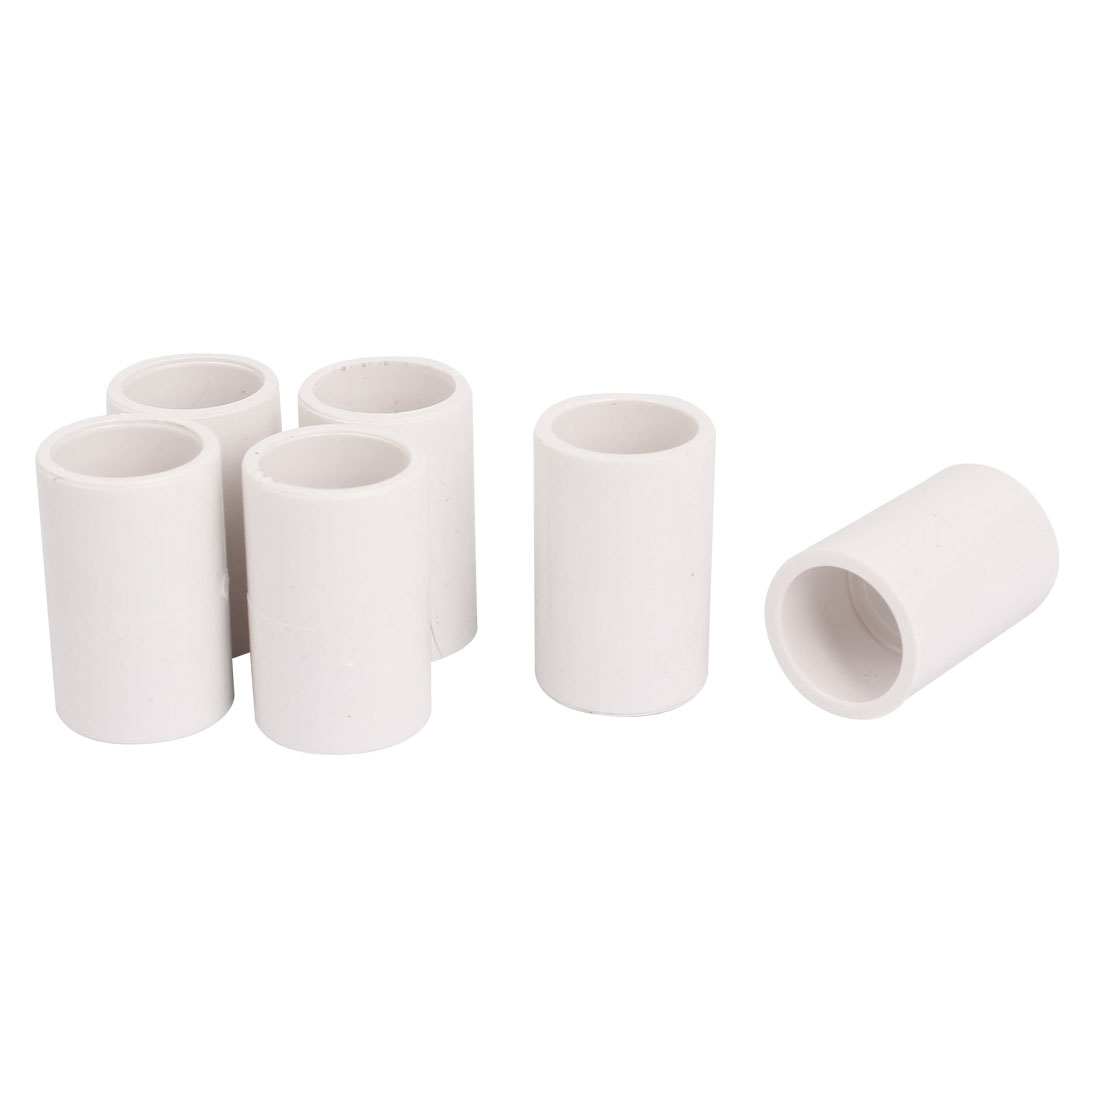 20mm Drinking Water Pipe Tube Straight PVC-U Fitting Adapter Connector 6pcs